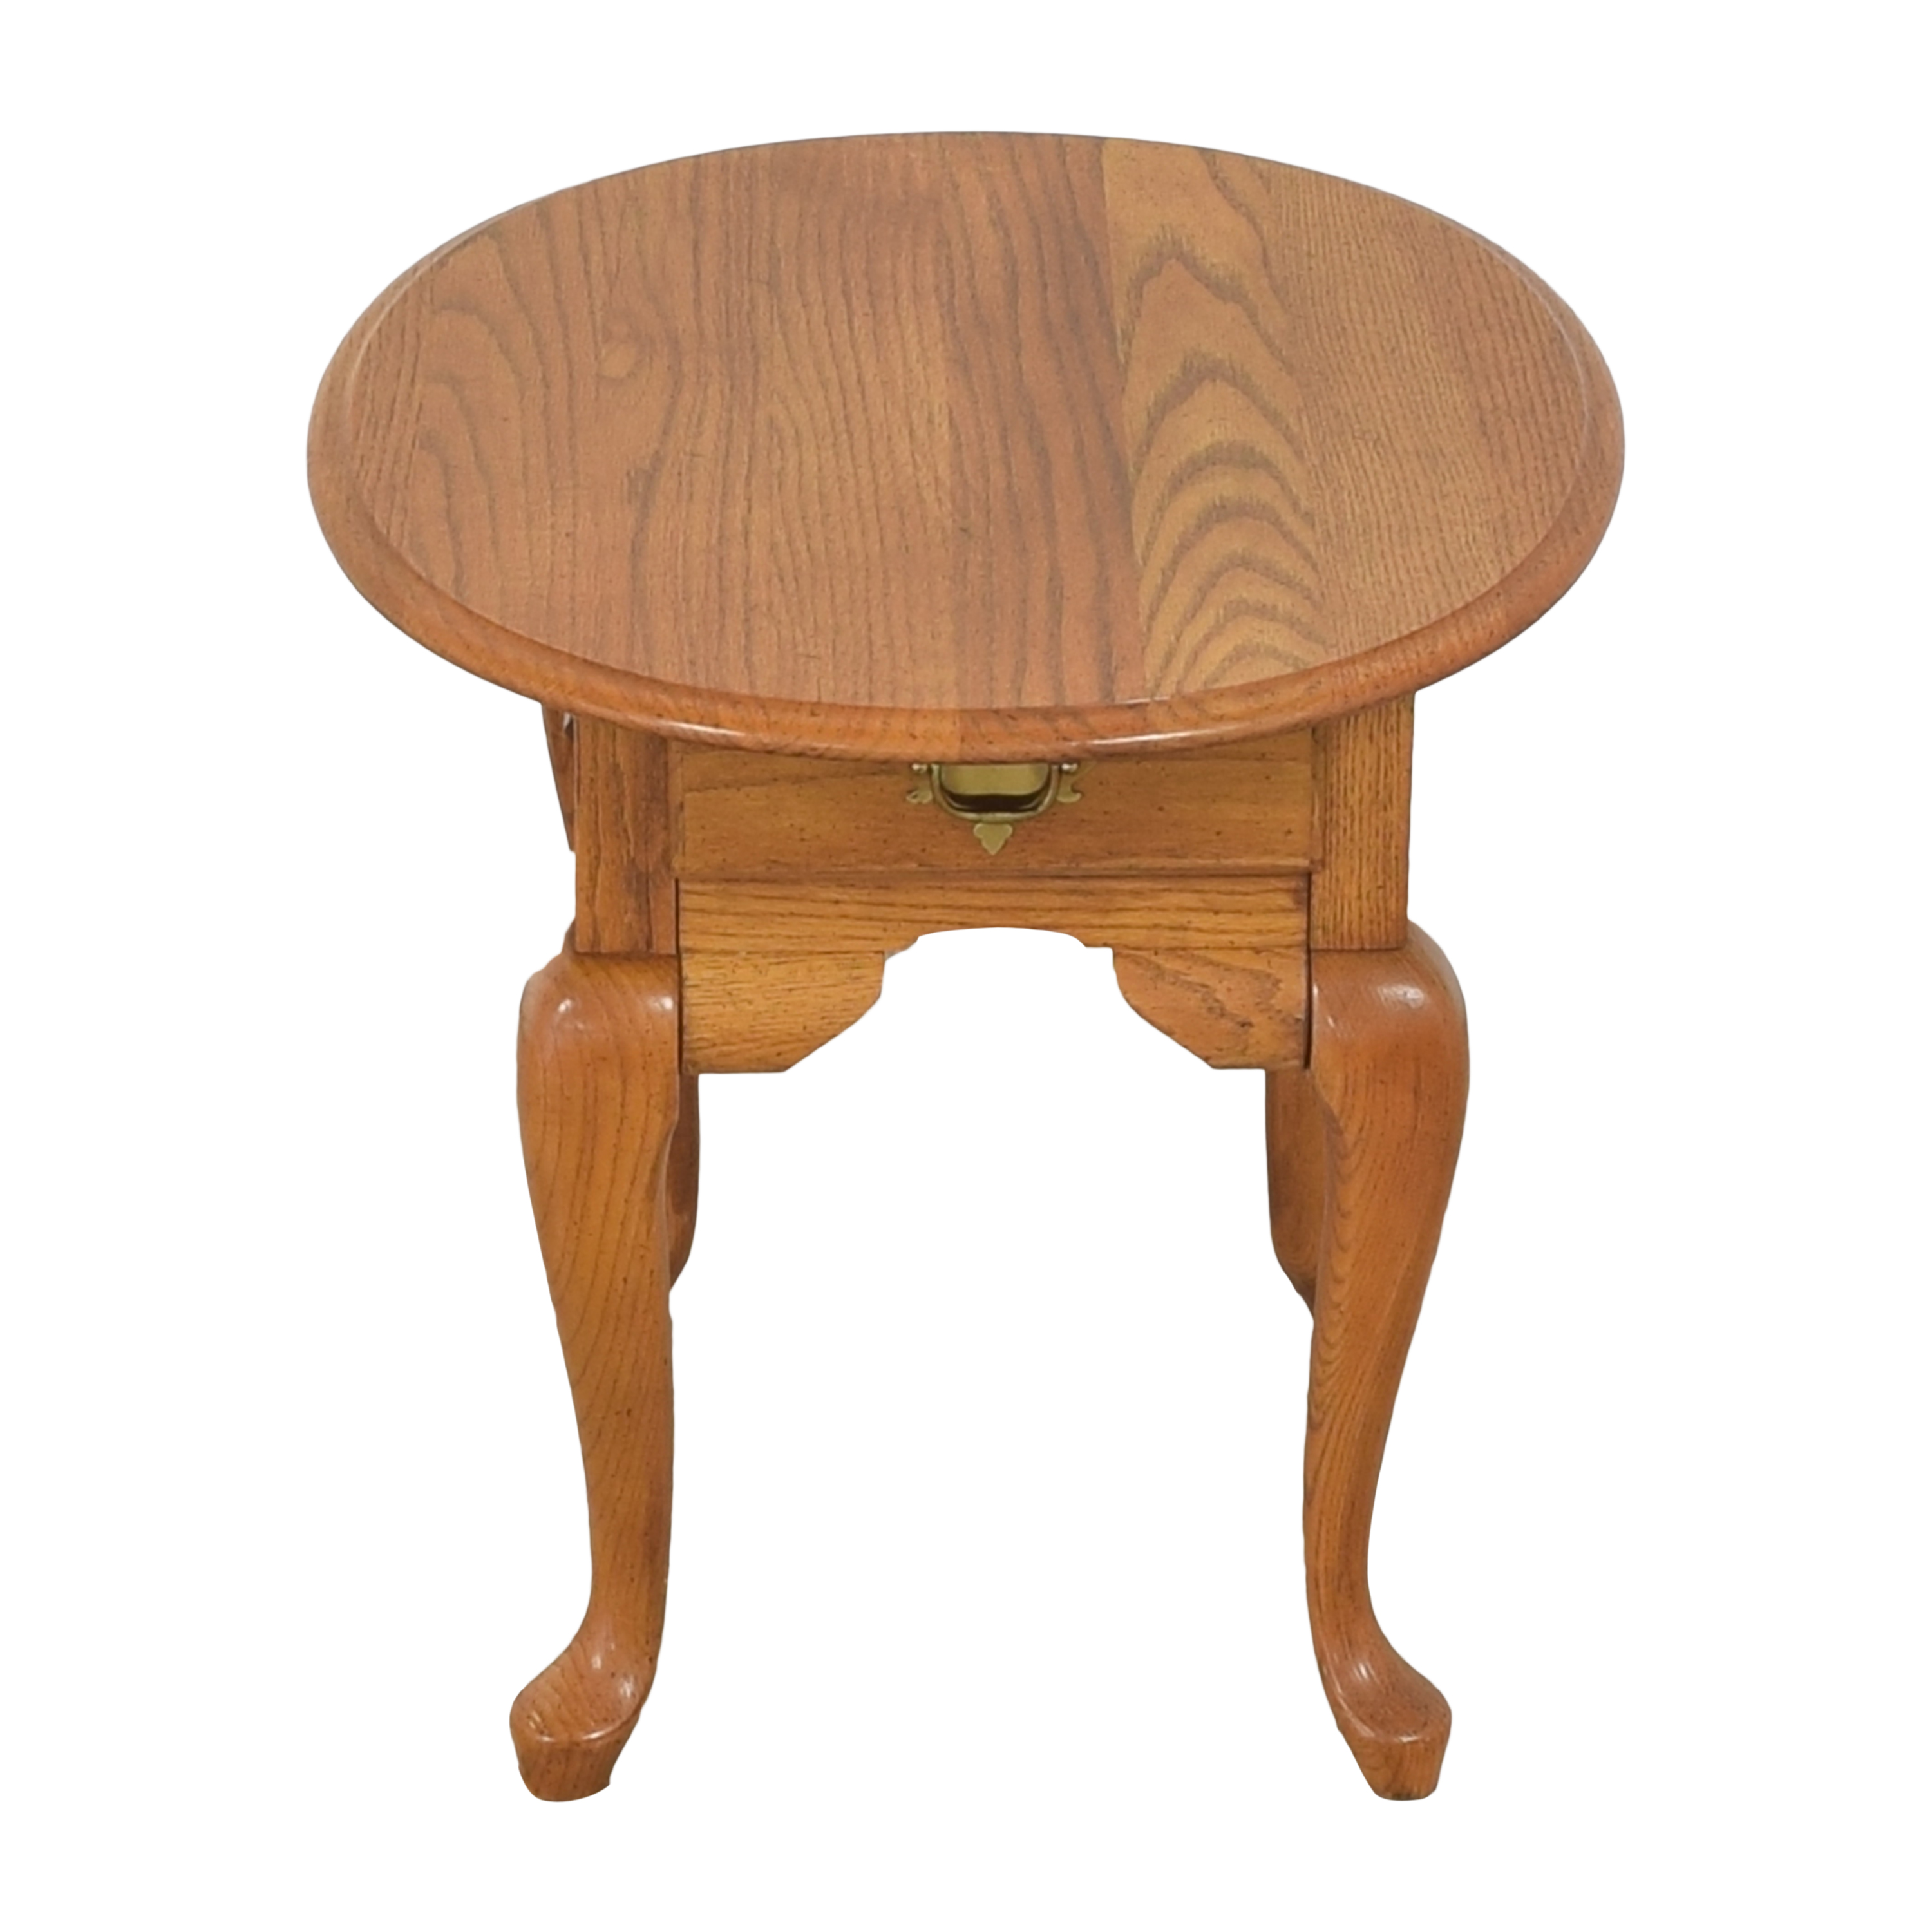 Broyhill Furniture Broyhill Single Drawer Round End Table dimensions